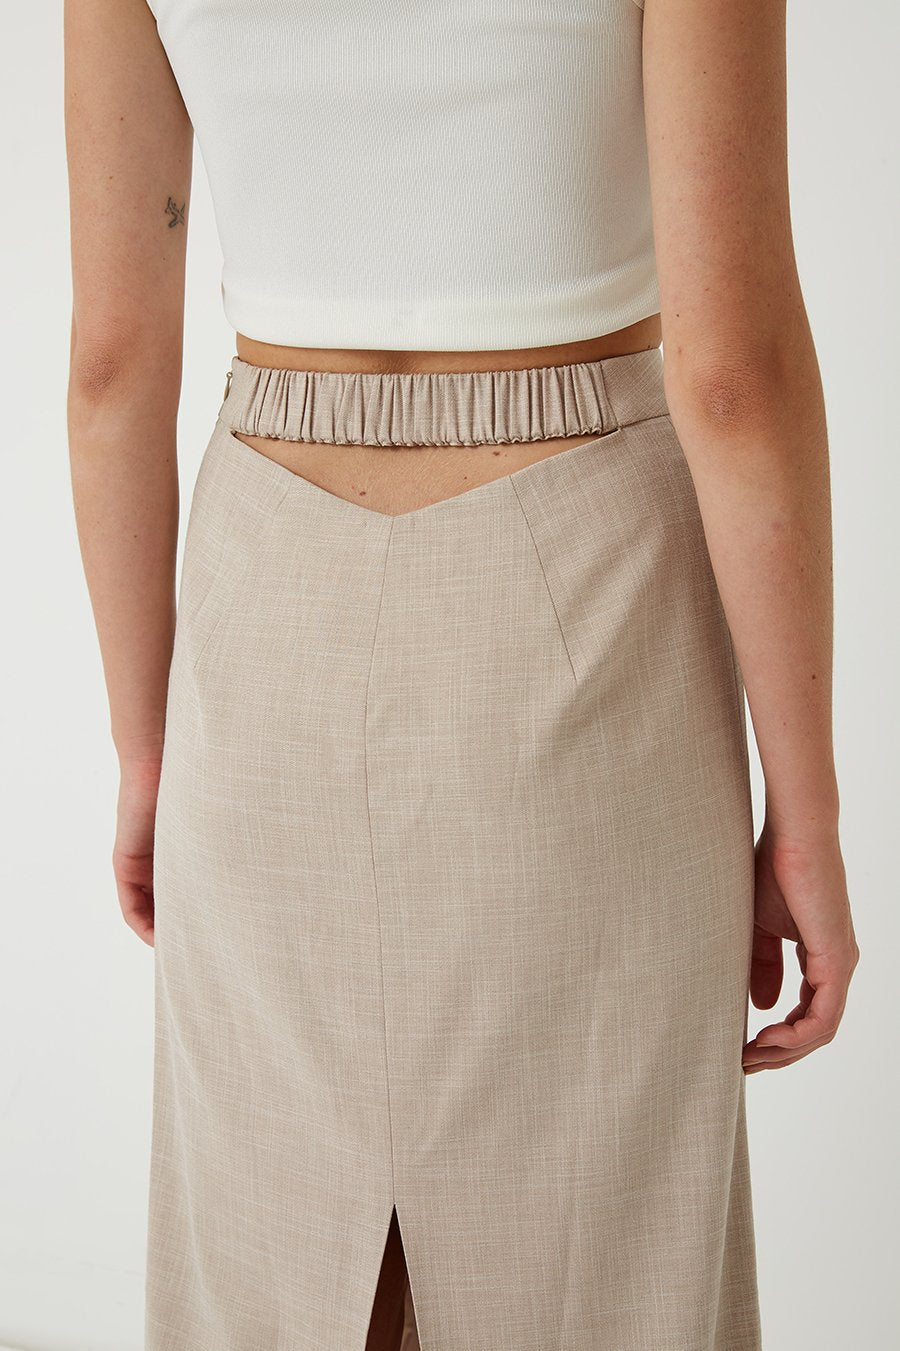 FRIEND OF AUDREY | Quillan Cut-Out Midi Skirt